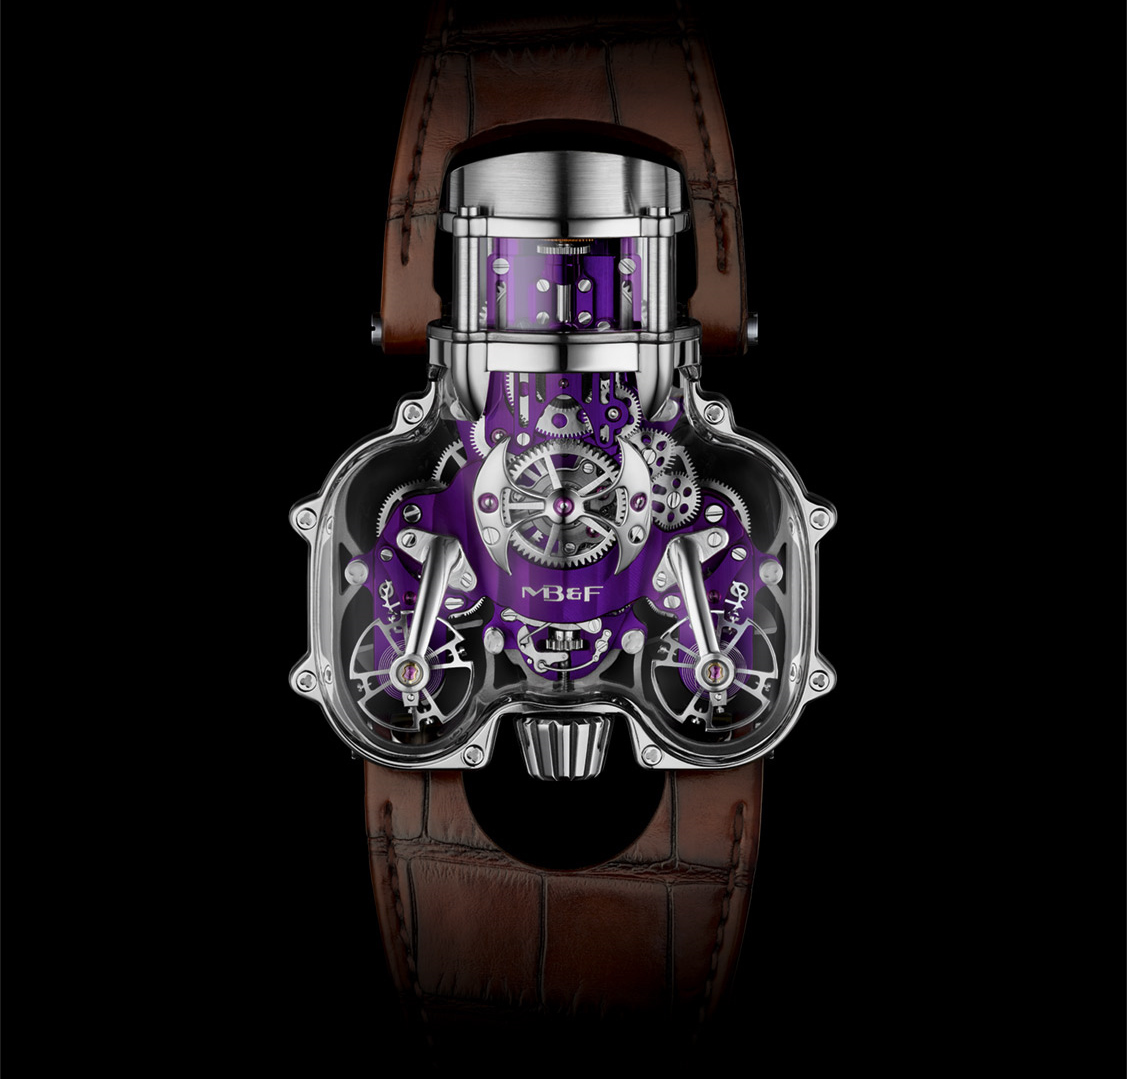 mbandf_hm9_sv_wg_purple_top_-_europa_star_magazine_2021